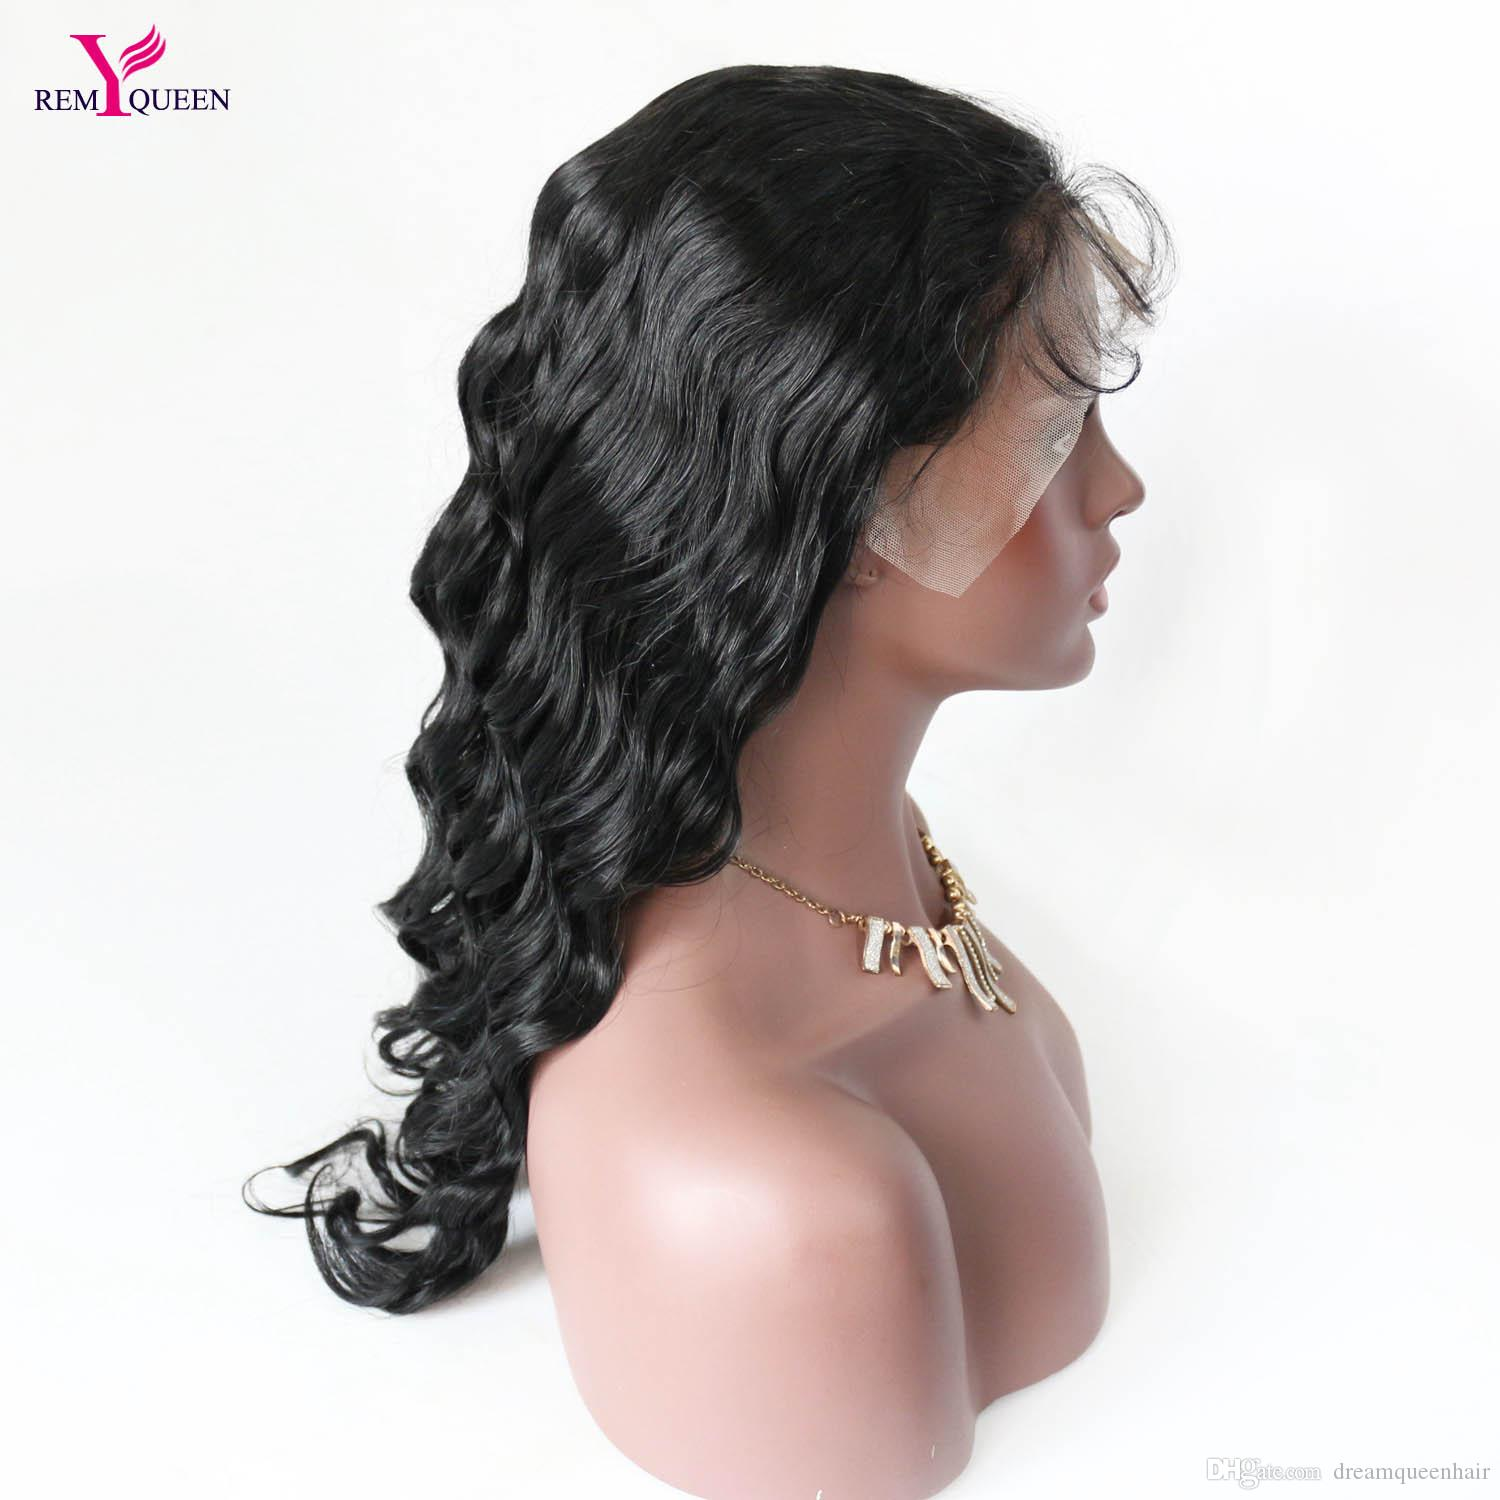 Remy Queen Body Wave Front Lace Wigs For Black Women 8A Natural Color Wig with Baby Hair Around Natural Hairline 130% Density